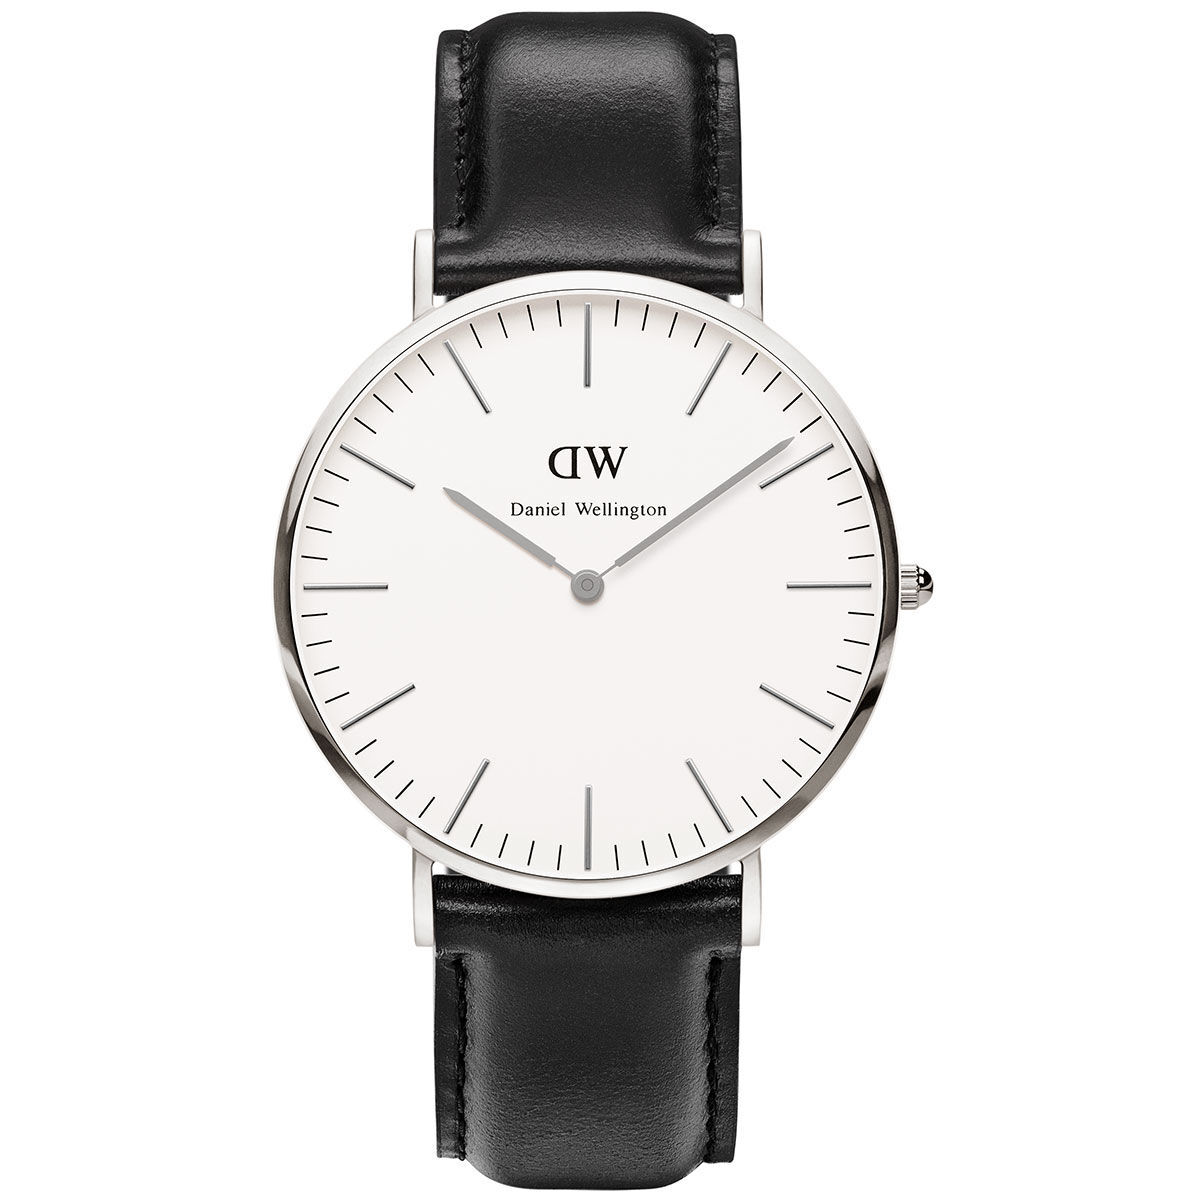 "Malerisch Gute Herrenuhren Foto Von Daniel Wellington Herrenuhr Sheffield Classic Collection ""dw00100020"""